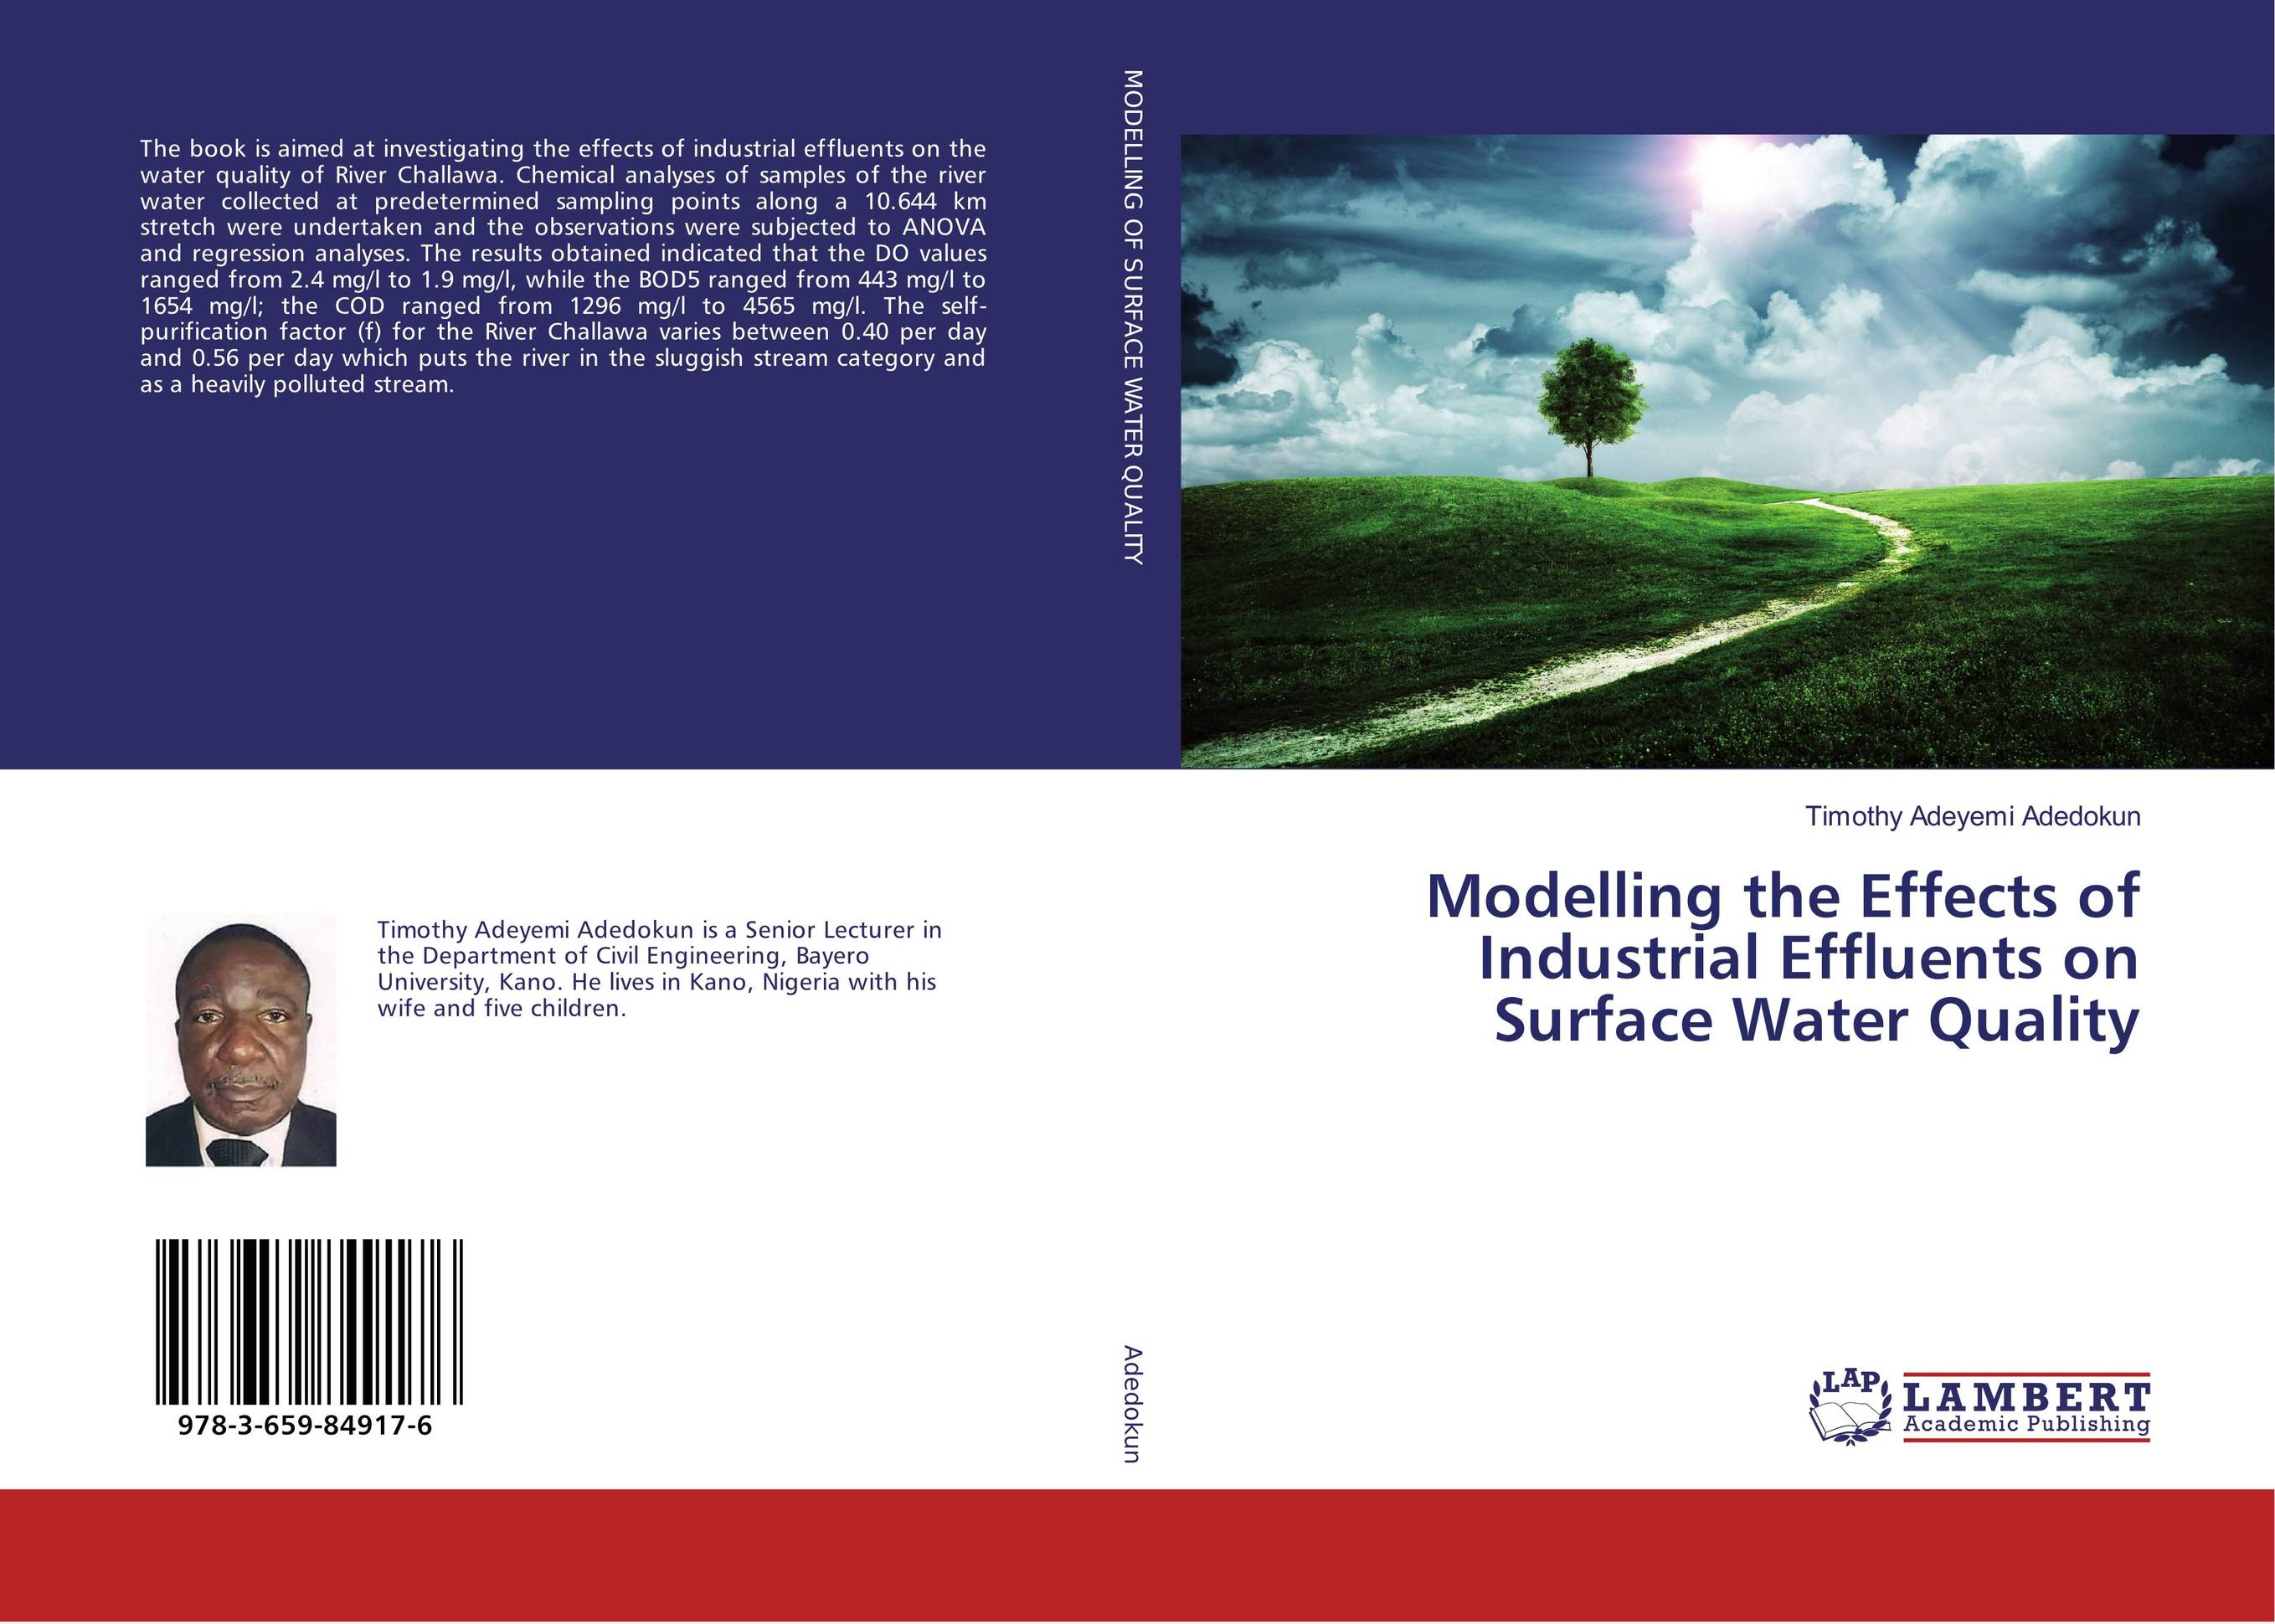 Modelling the Effects of Industrial Effluents on Surface Water Quality effects of dams on river water quality